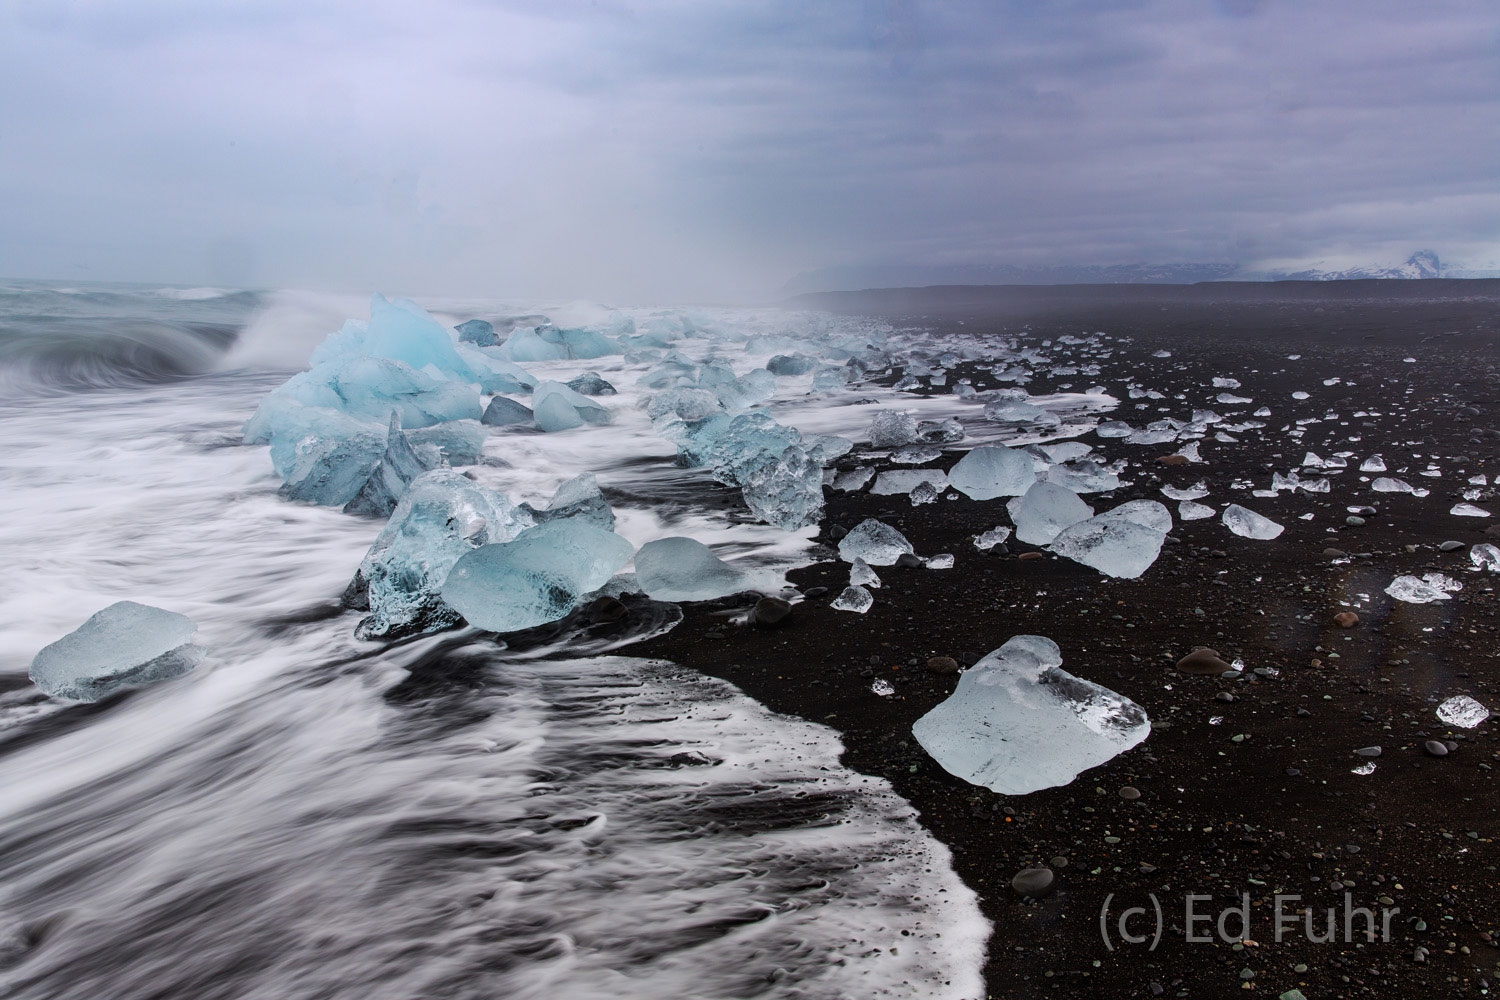 The perpetual winds that whip across the Iceland landscape drive powerful waves onto this icy shore.